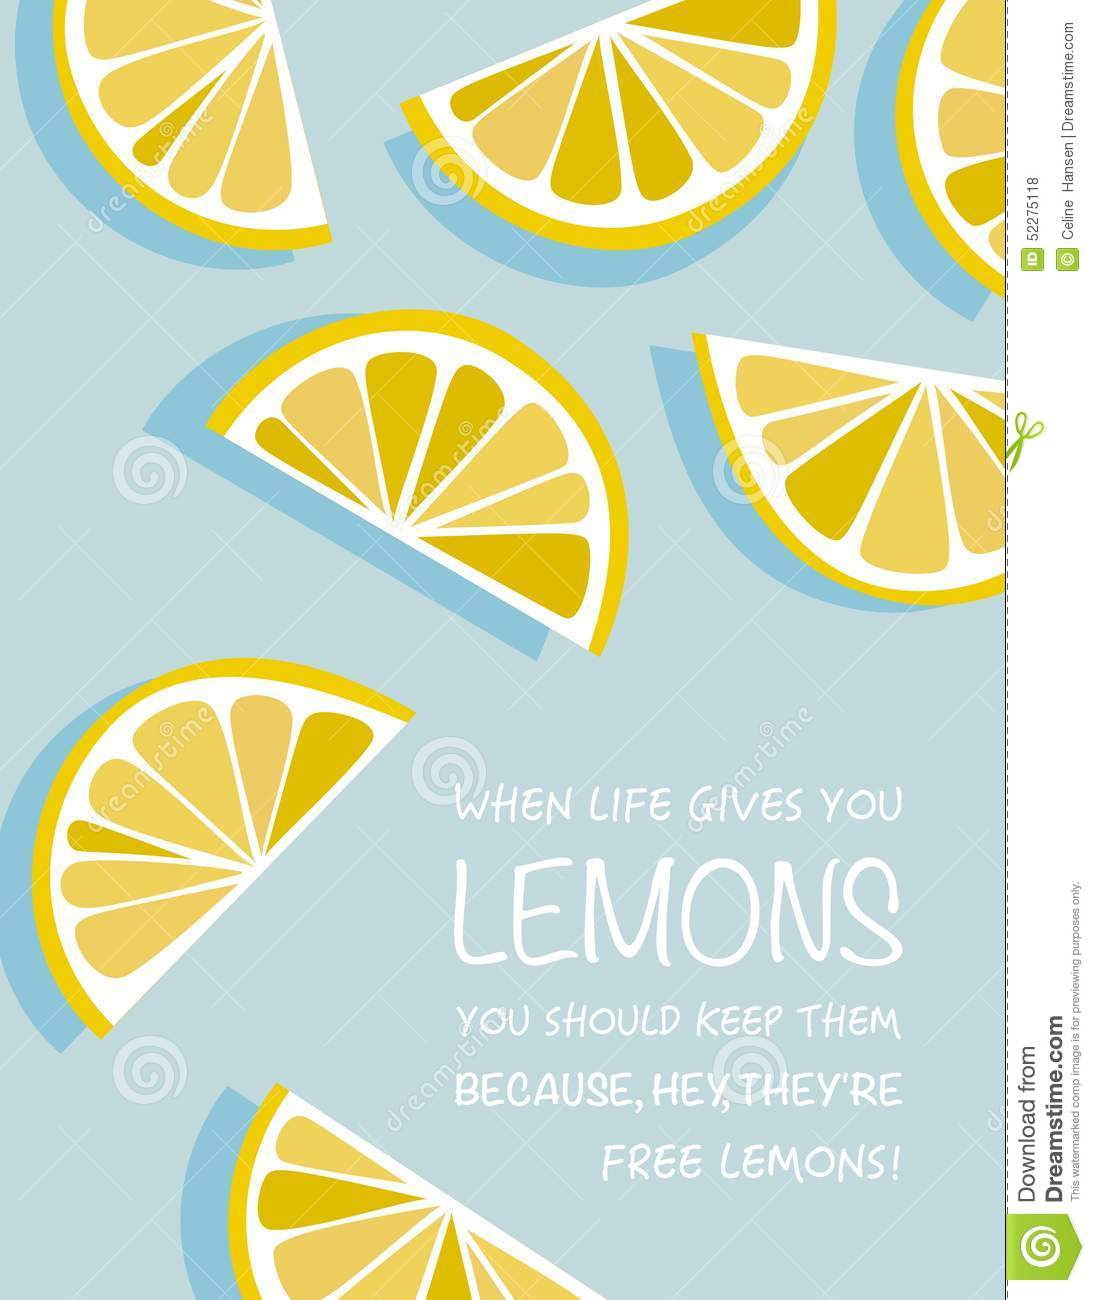 When Life Gives You Lemons Stock Illustration Illustration Of Lemon